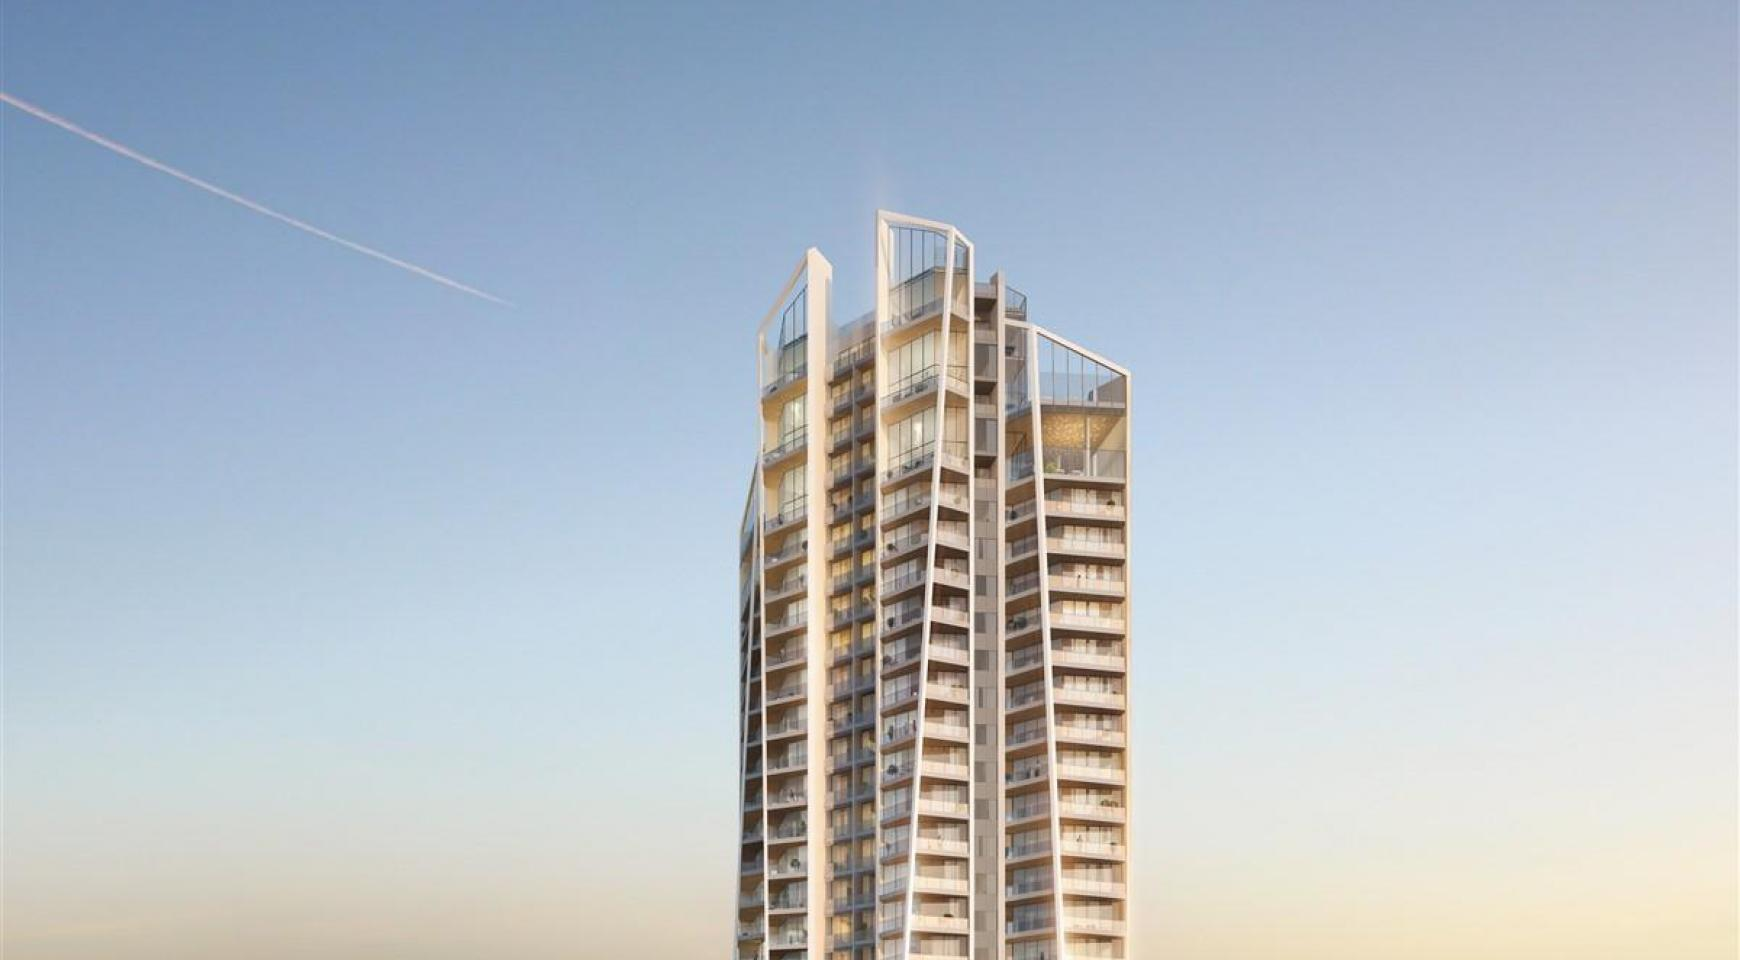 Sky Tower. New Spacious 3 Bedroom Apartment in an Exclusive Project - 2